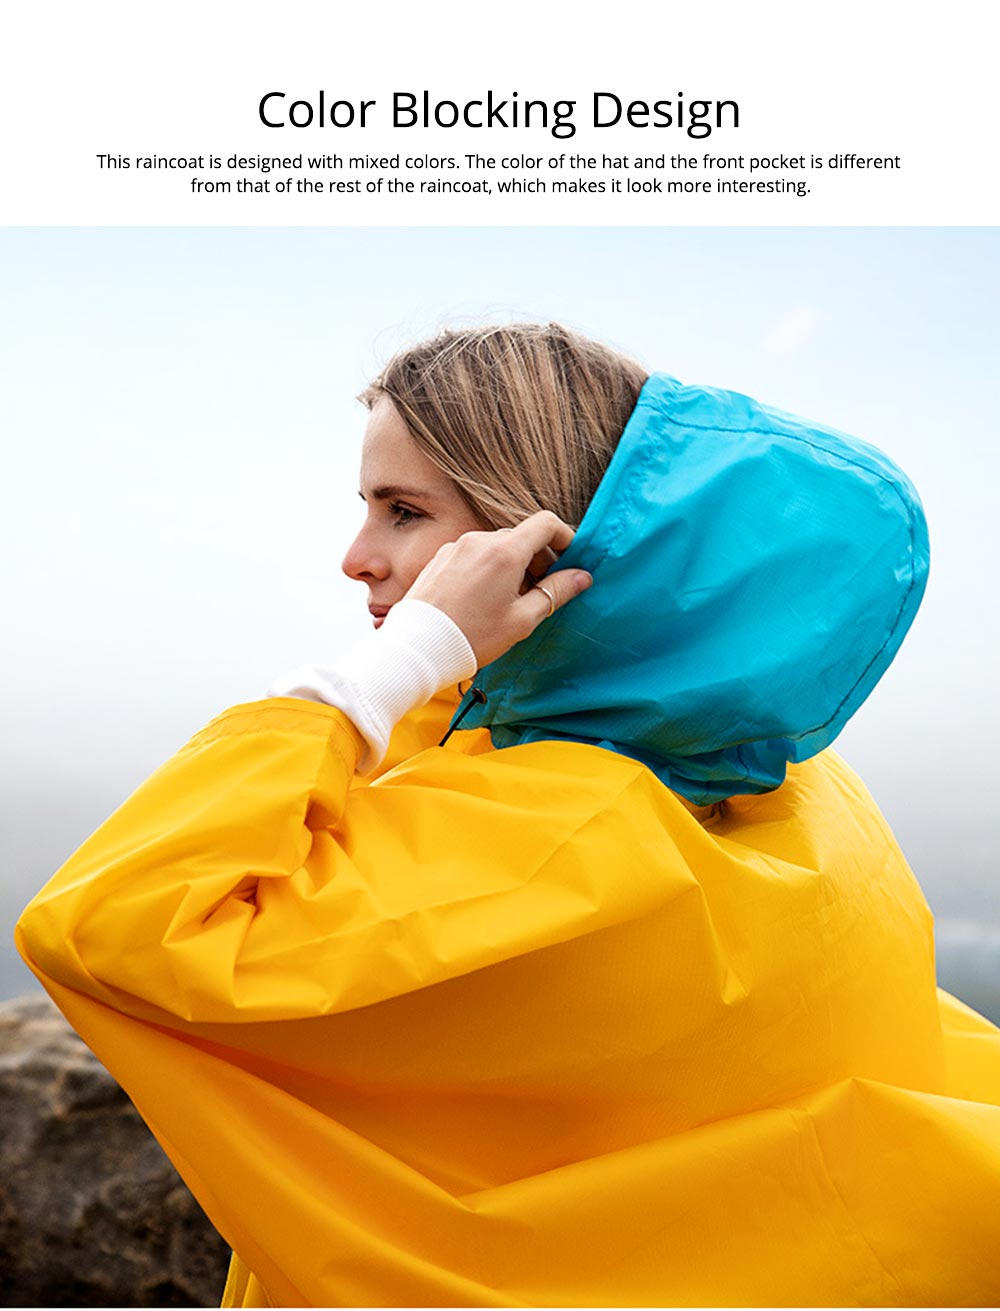 Color Stitching Raincoat for Adults, Portable Hiking Poncho with Hood & Sleeves, Outdoors Ultralight Raincoat 1